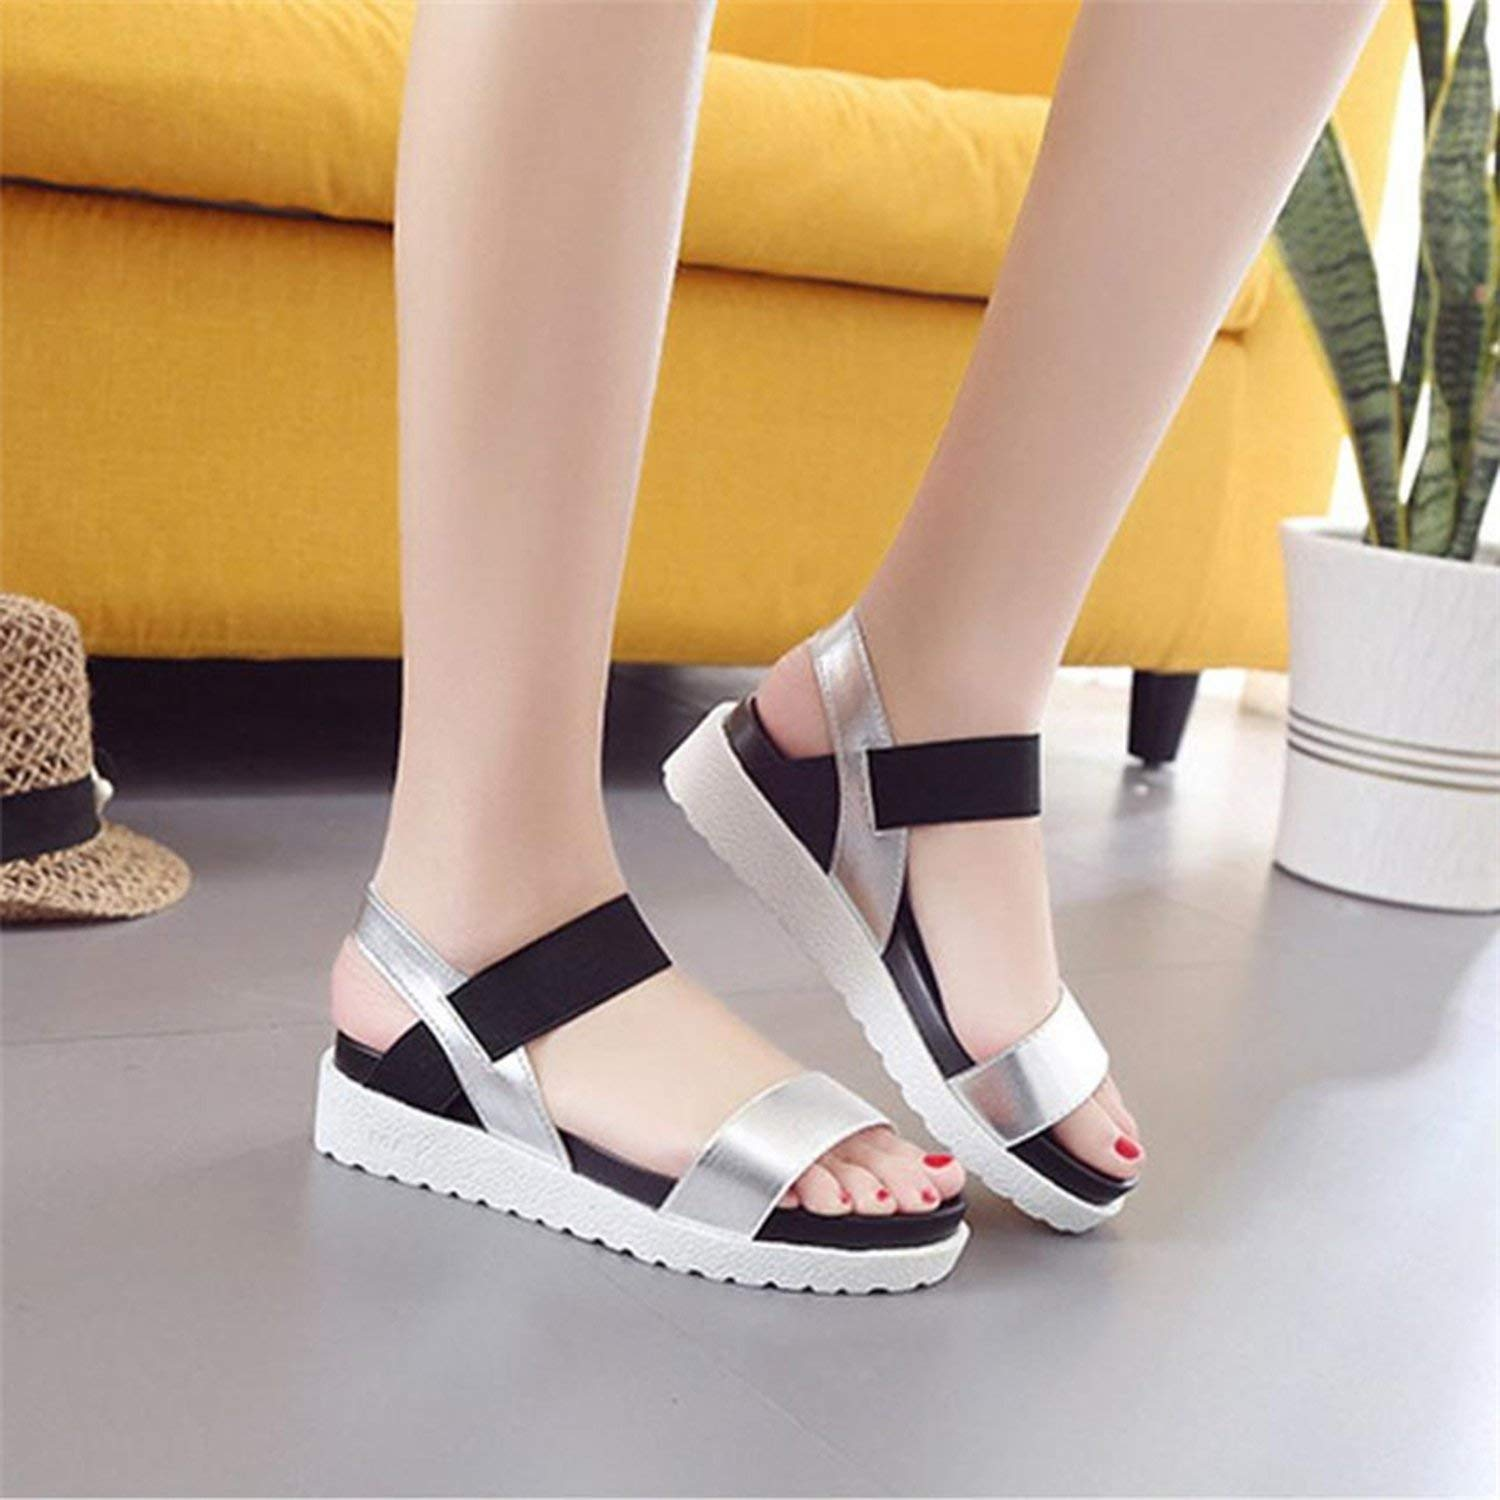 Shoes Woman Fashion Sandals Women Aged Leather Flat Sandals Ladies Shoes A0515#30,Brown,7